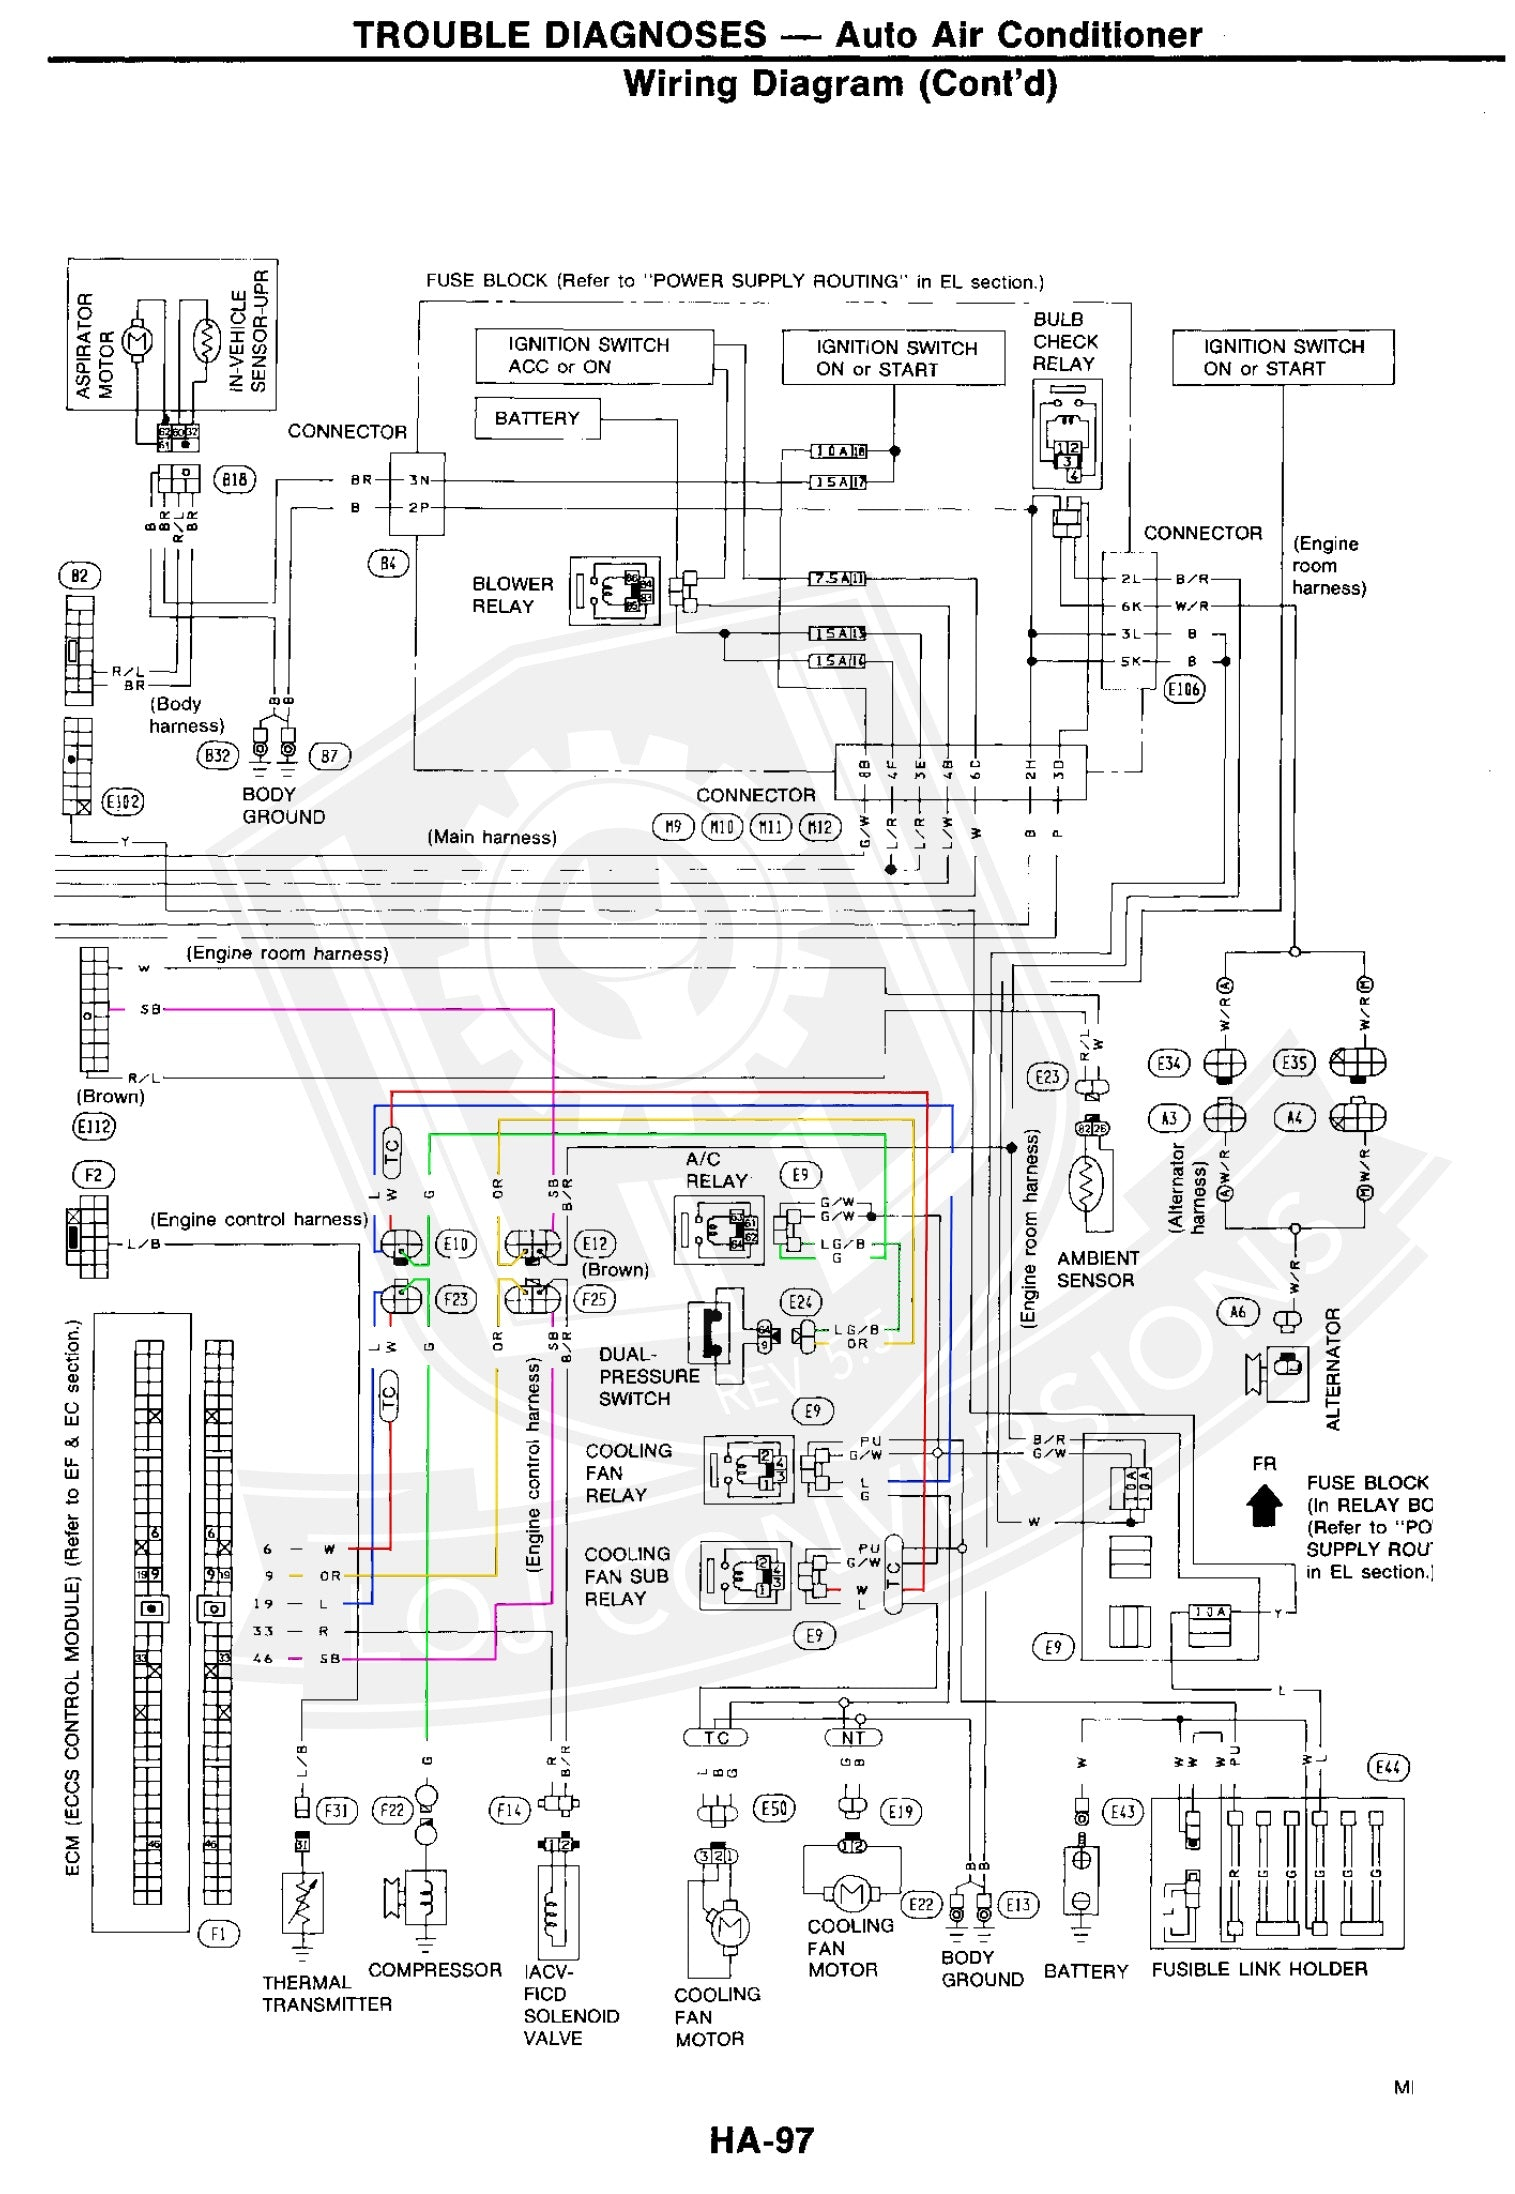 [DIAGRAM_38IU]  Wiring the AC in a 300ZX Engine Conversion – LOJ Conversions | Z32 Wiring Diagram |  | LOJ Conversions